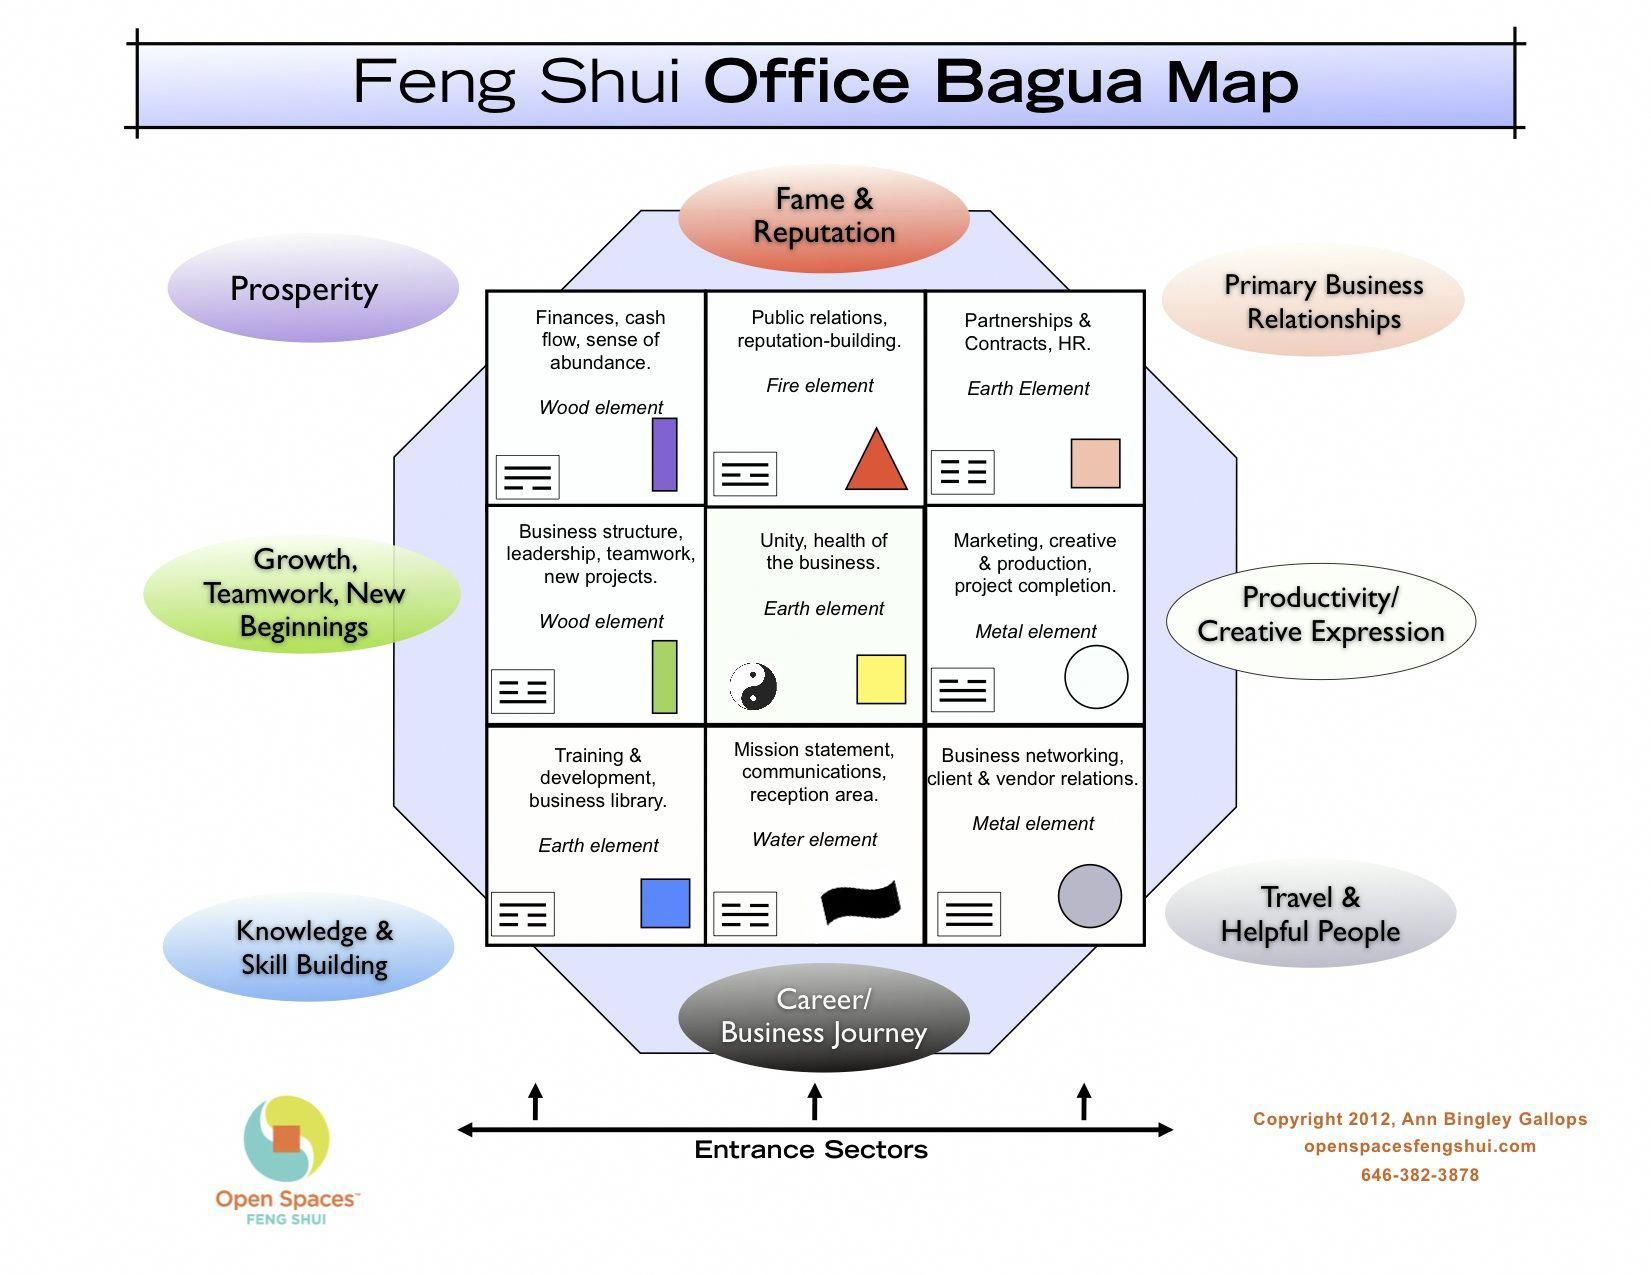 Fengshui Good Office Feng Shui When You Move To A New Space Office Feng Shui On Homedecorationtipsbed Feng Shui Office Bagua Map Feng Shui Office Layout